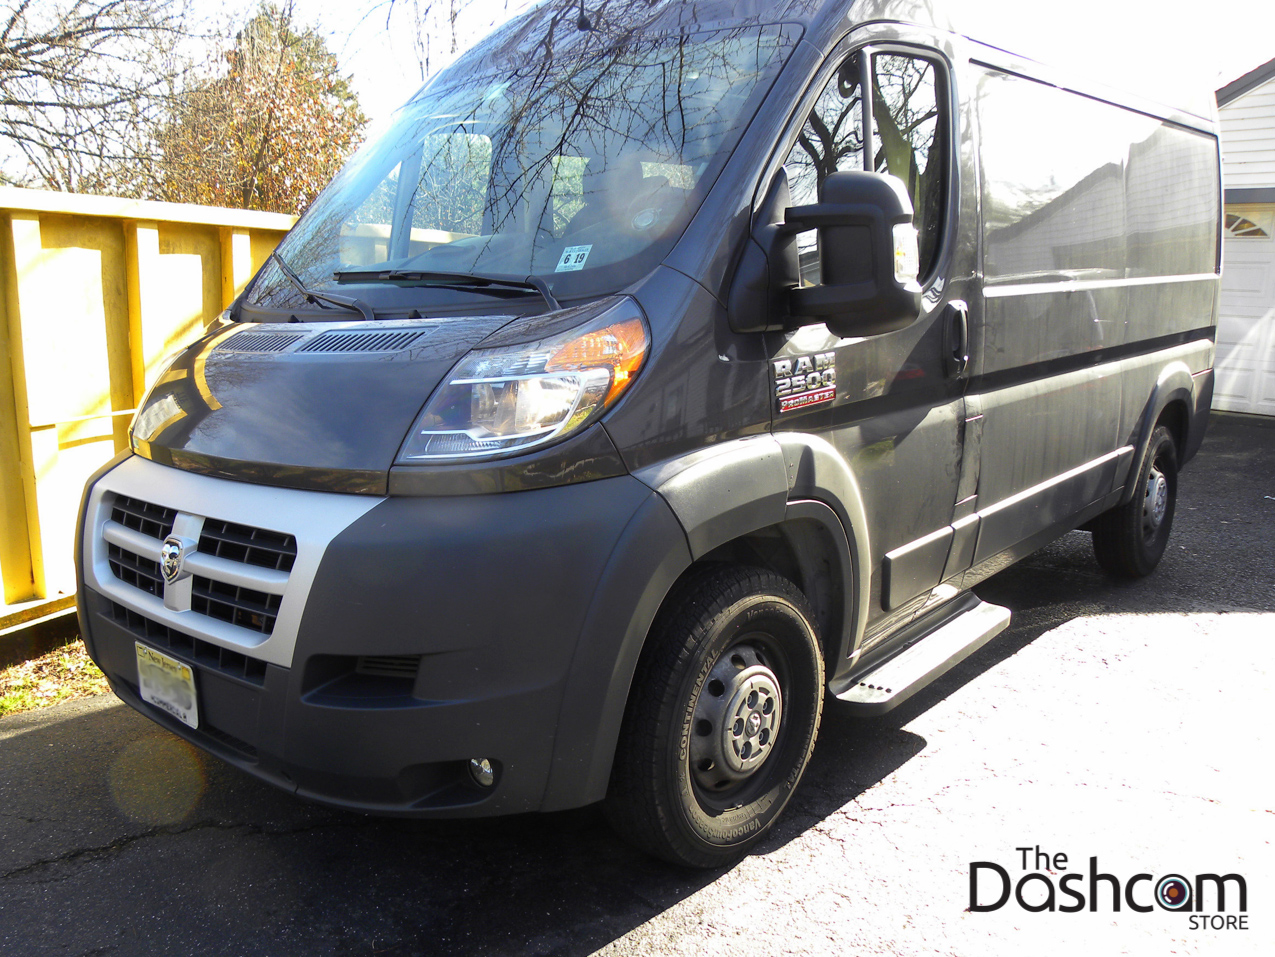 thedashcamstore.com blackvue dr650gw 2ch power magic pro 2015 ram promaster 2500 install 1 2015 dodge ram promaster blackvue dr650gw 2ch dashcam installation 1999 Dodge Ram Fuse Box at bayanpartner.co